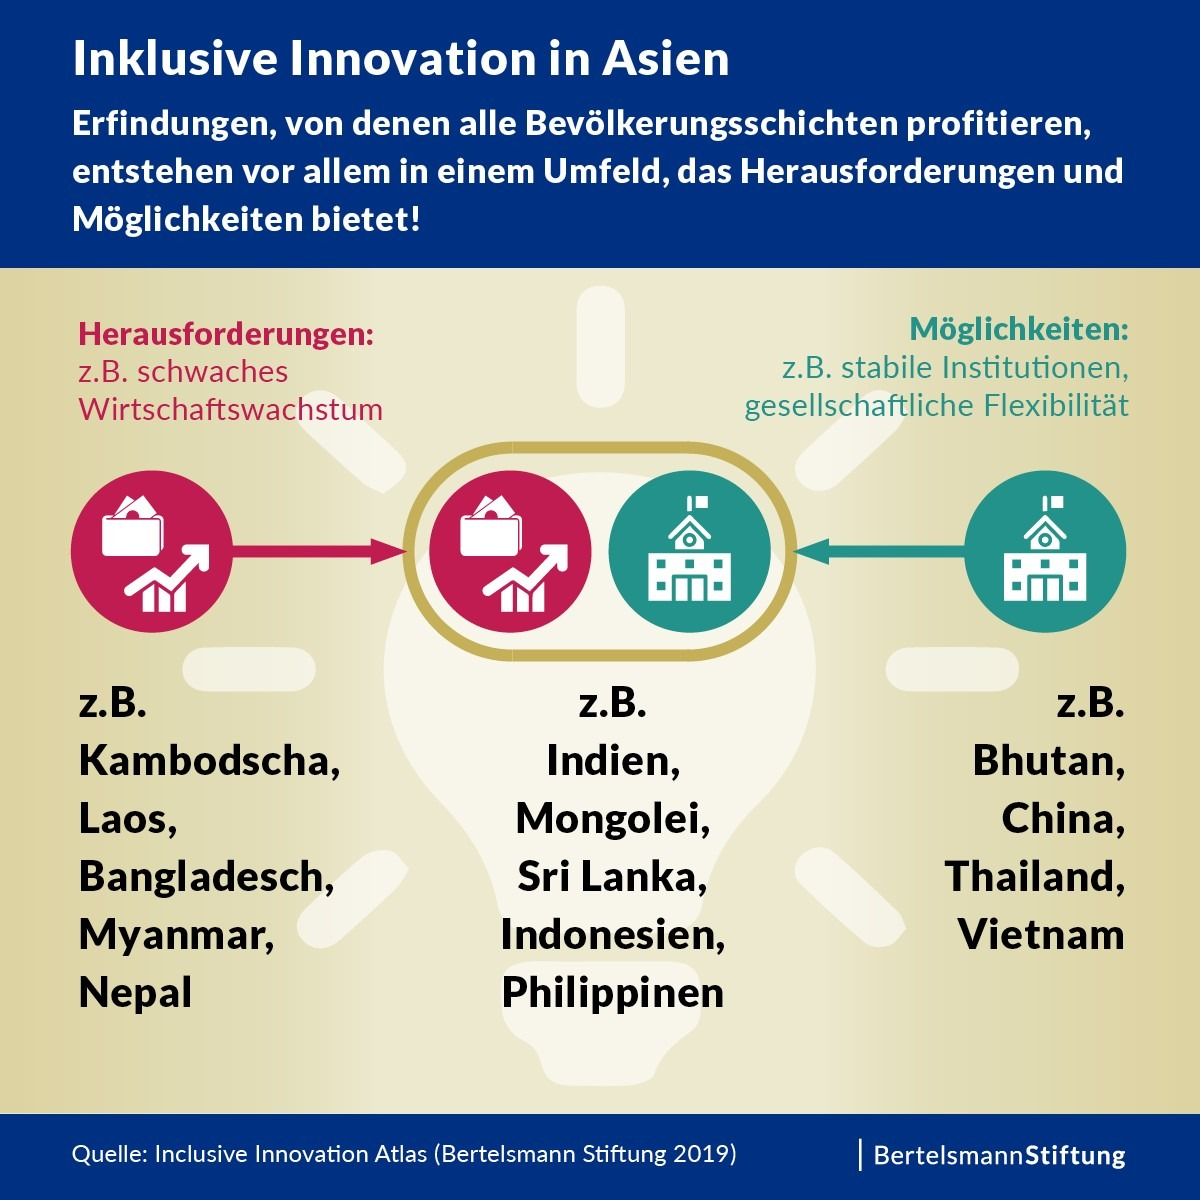 Inklusive Innovation in Asien